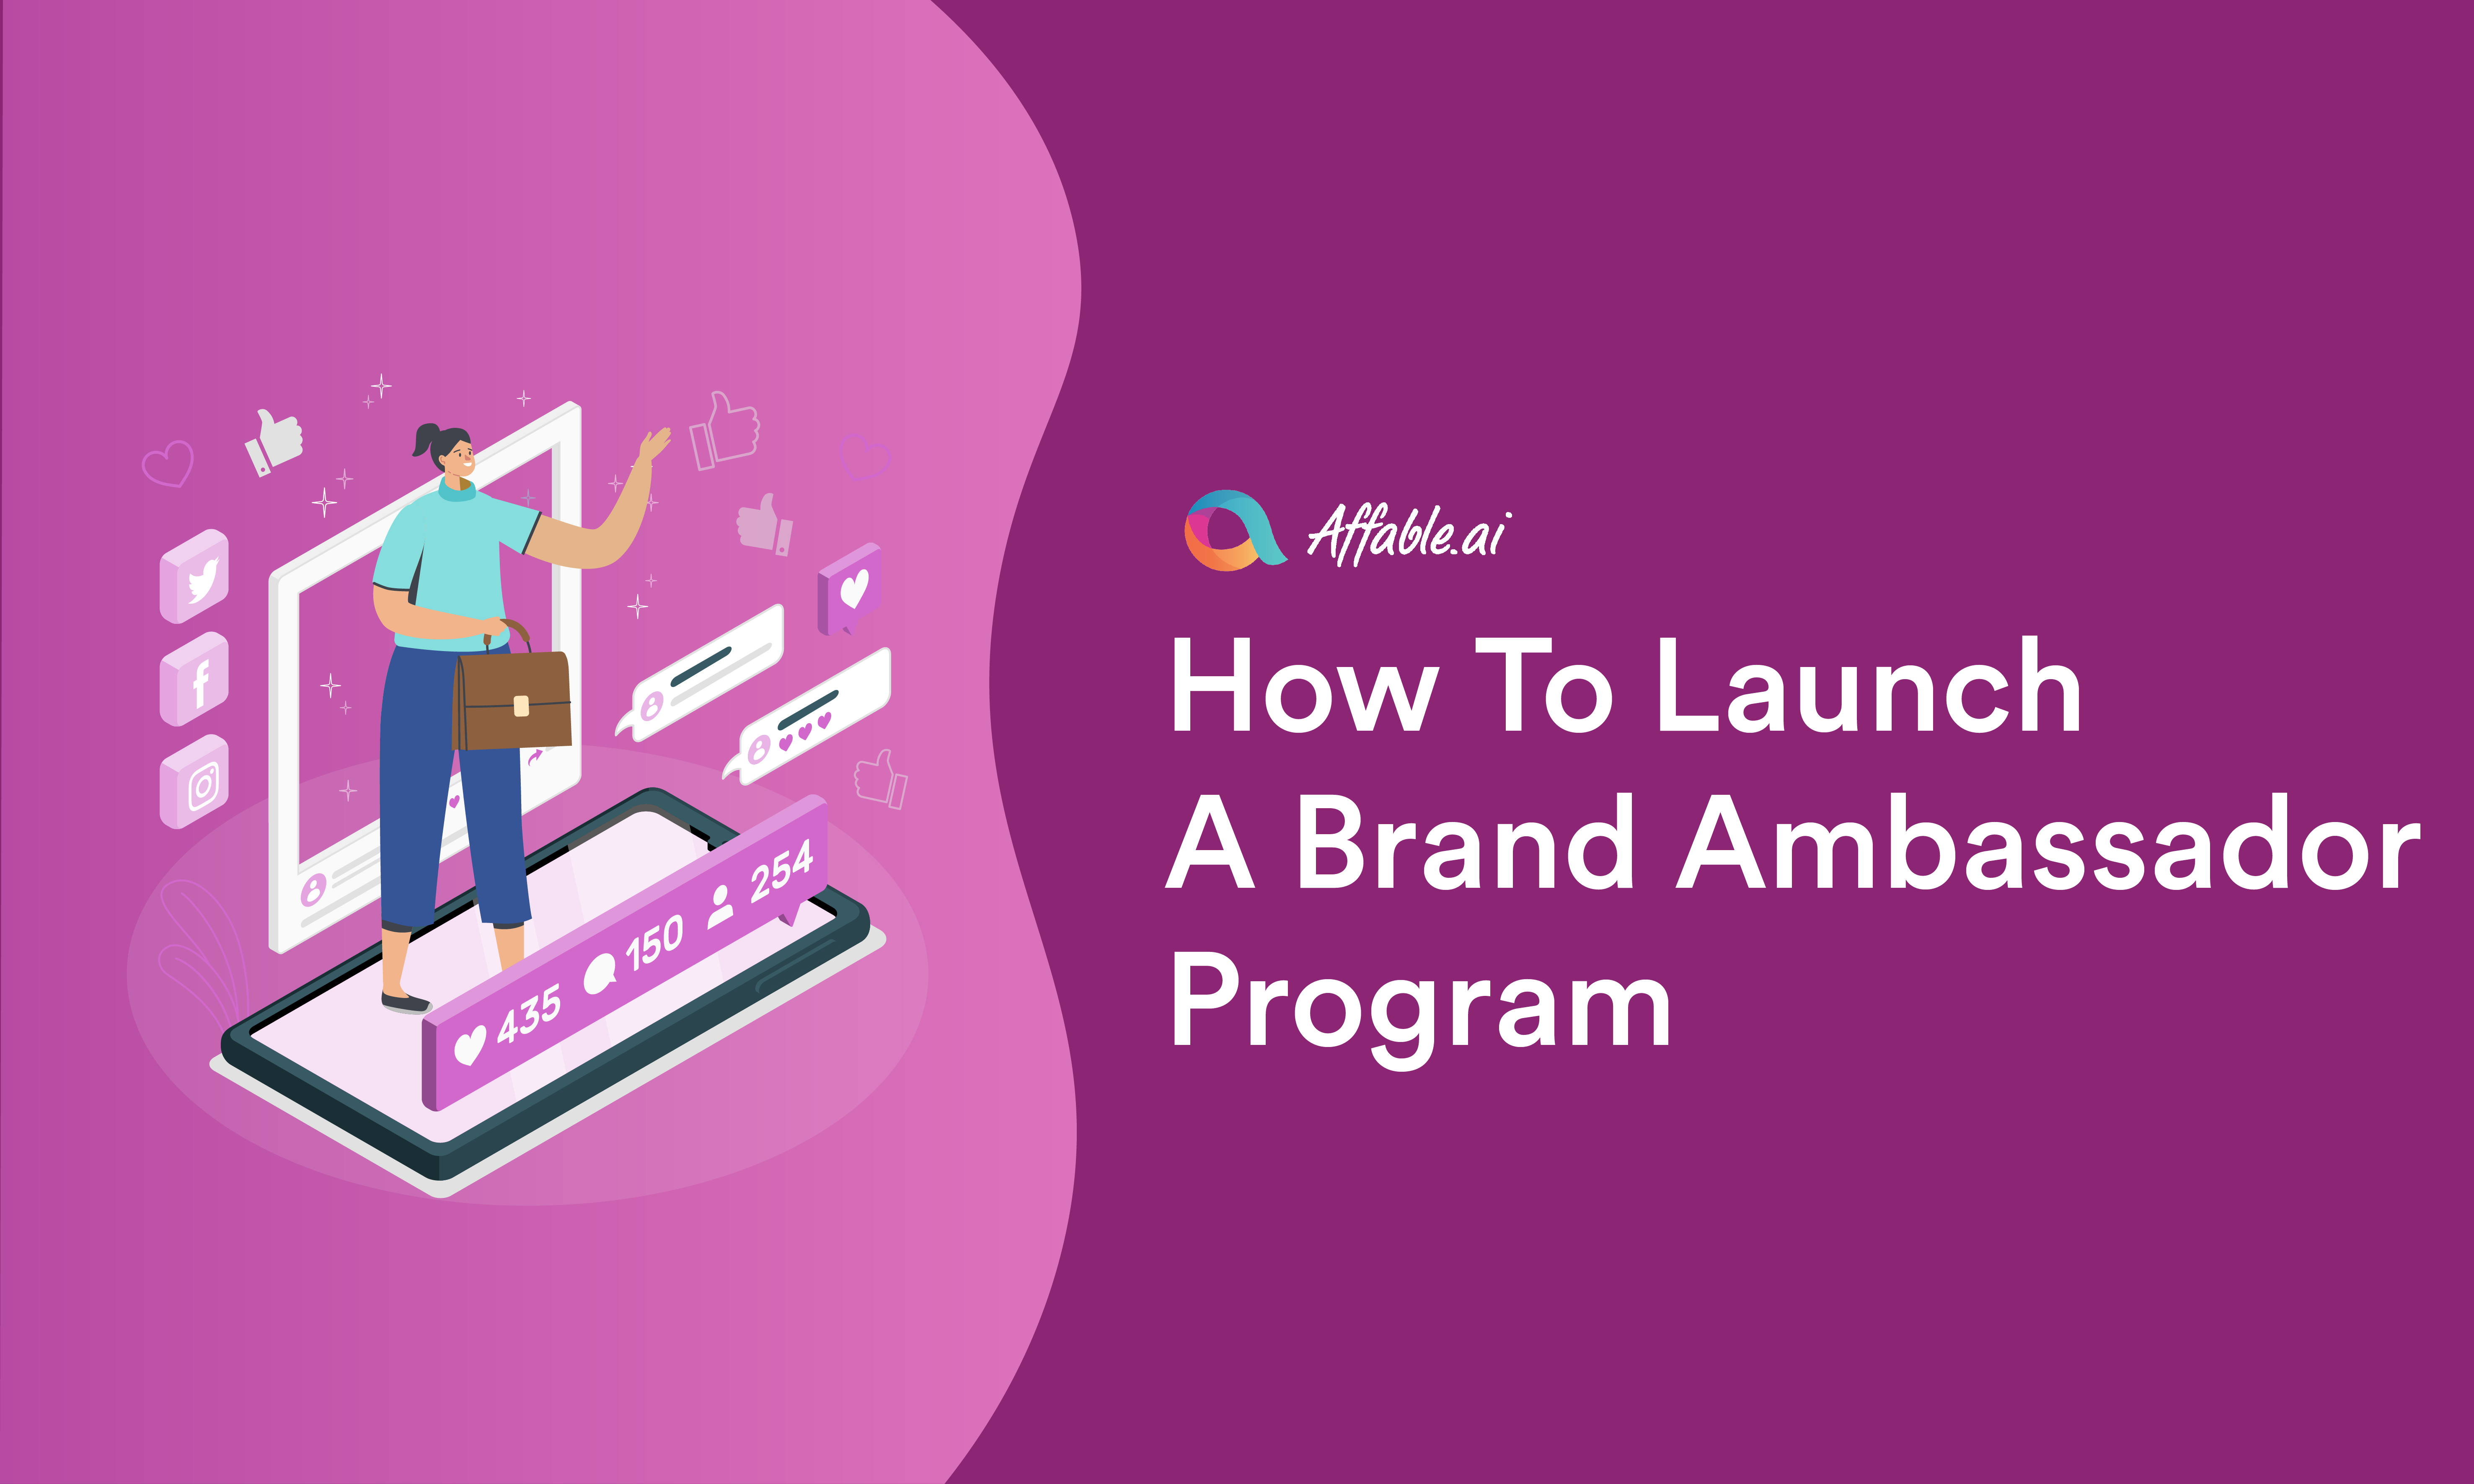 How To Launch a Brand Ambassador Program with Influencers